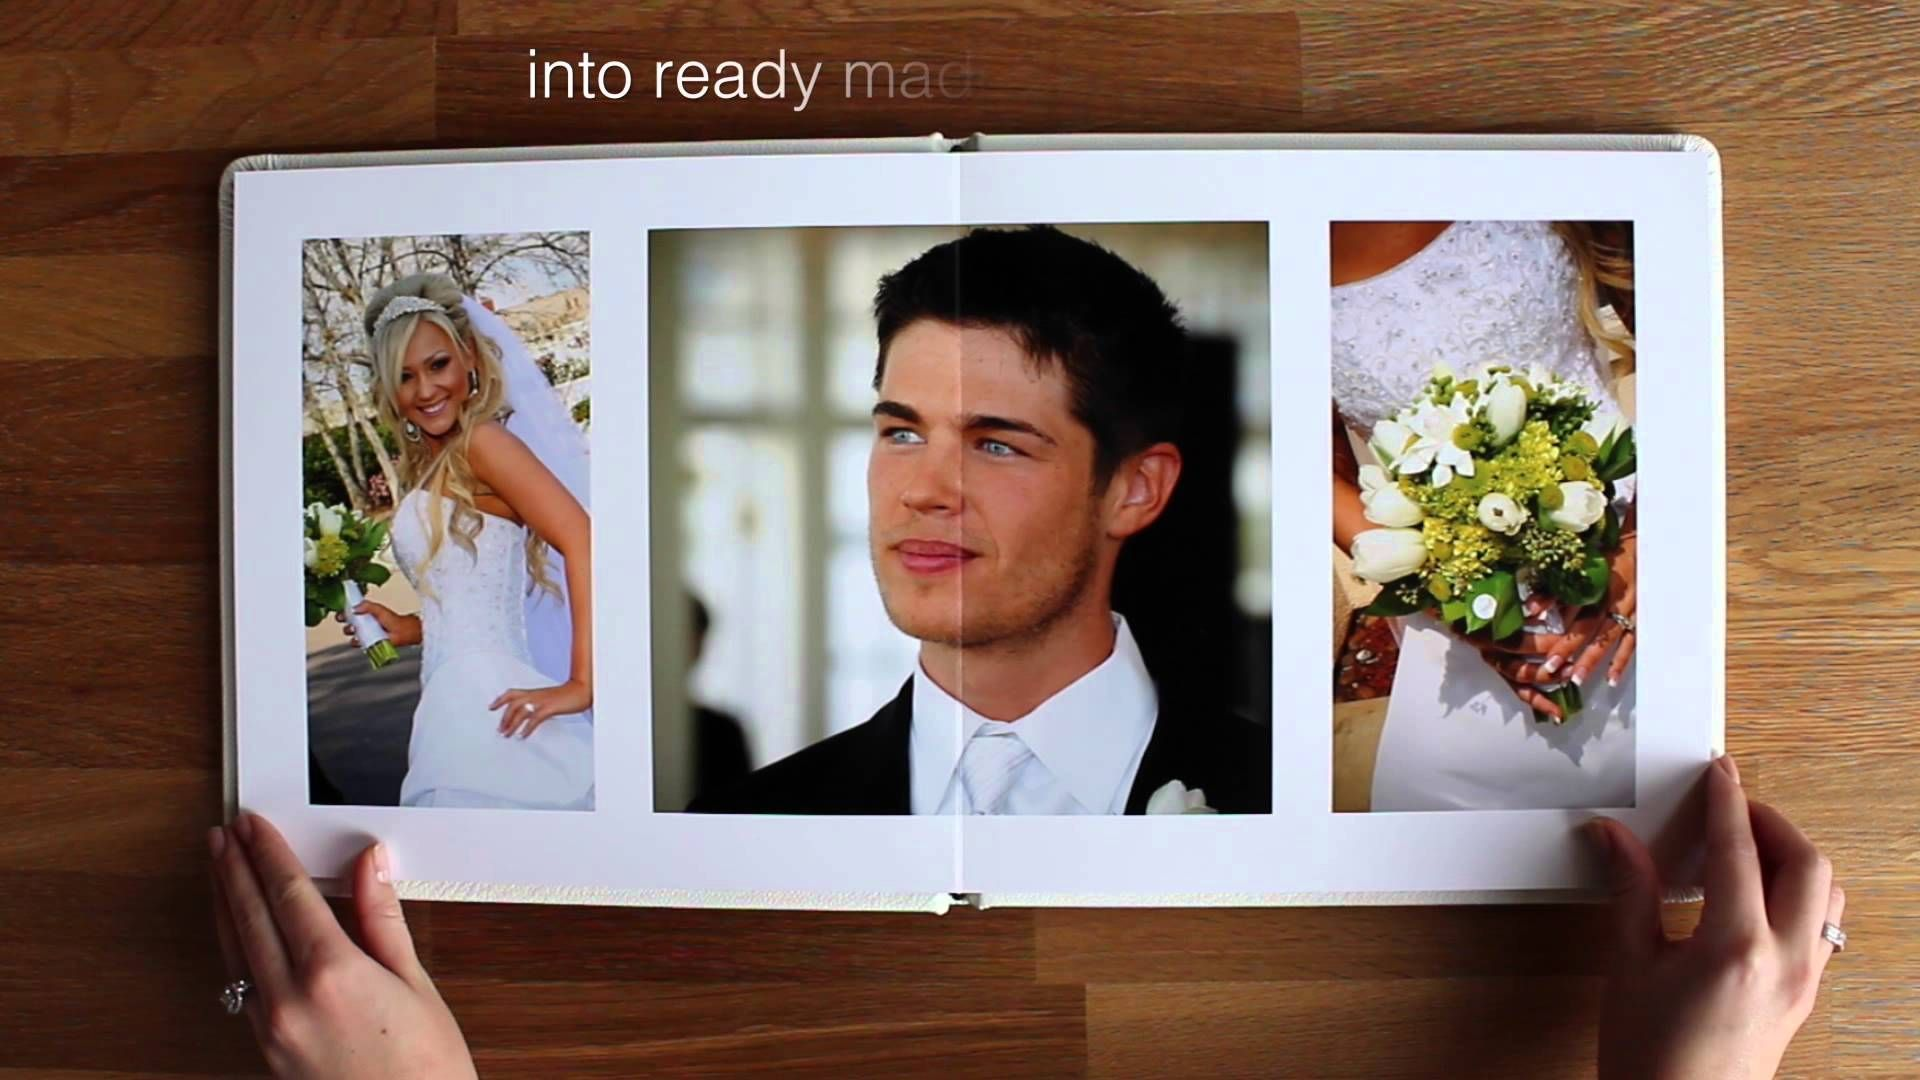 Diy wedding album simply the best quality diy wedding album you diy wedding album and photo books simply the best quality diy wedding album you will find pro quality flush mount albums direct to solutioingenieria Choice Image